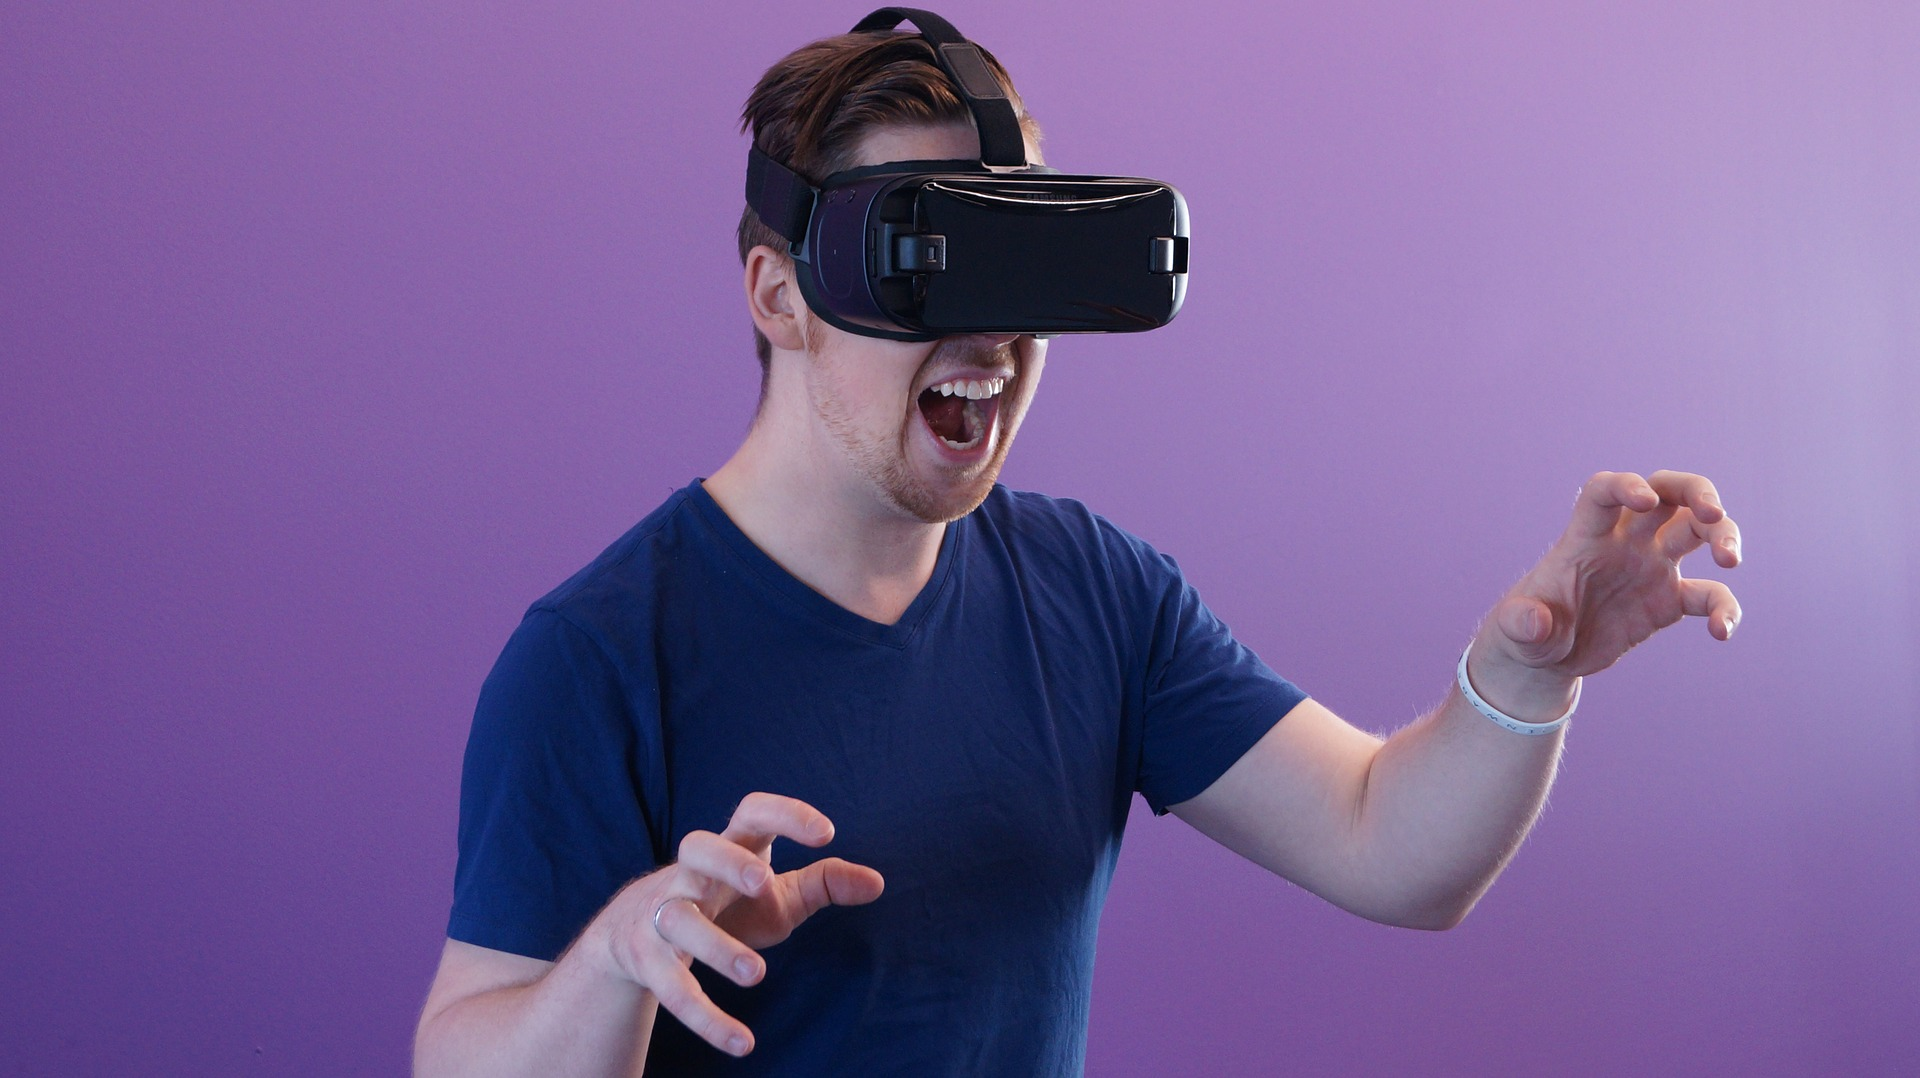 The Best Virtual Reality For Gaming